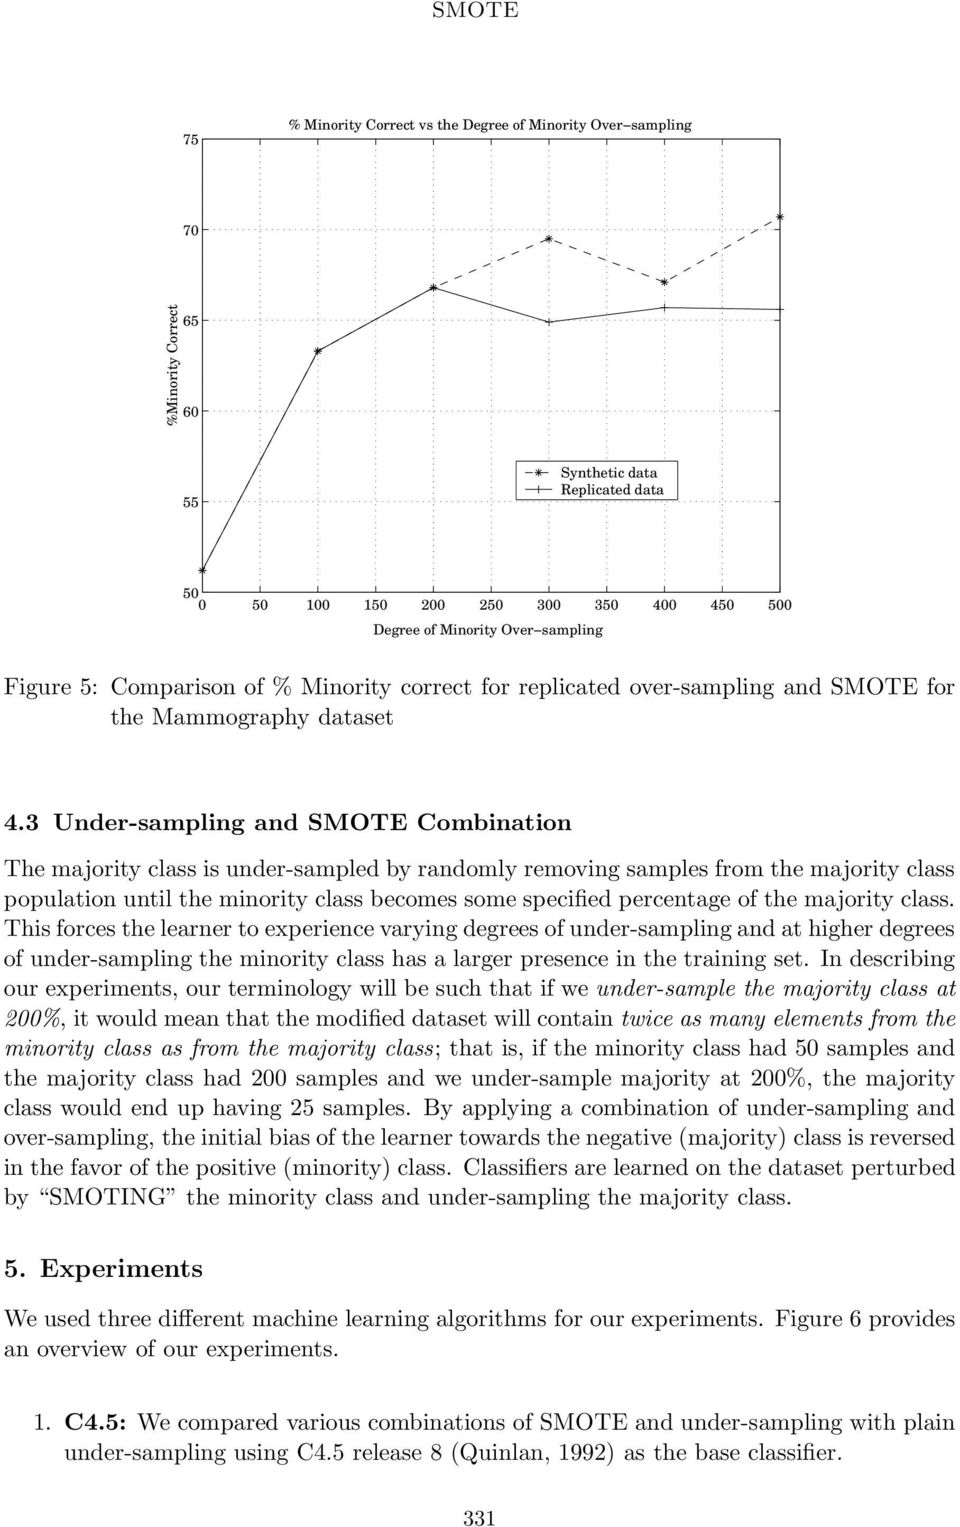 3 Under-sampling and SMOTE Combination The majority class is under-sampled by randomly removing samples from the majority class population until the minority class becomes some specified percentage